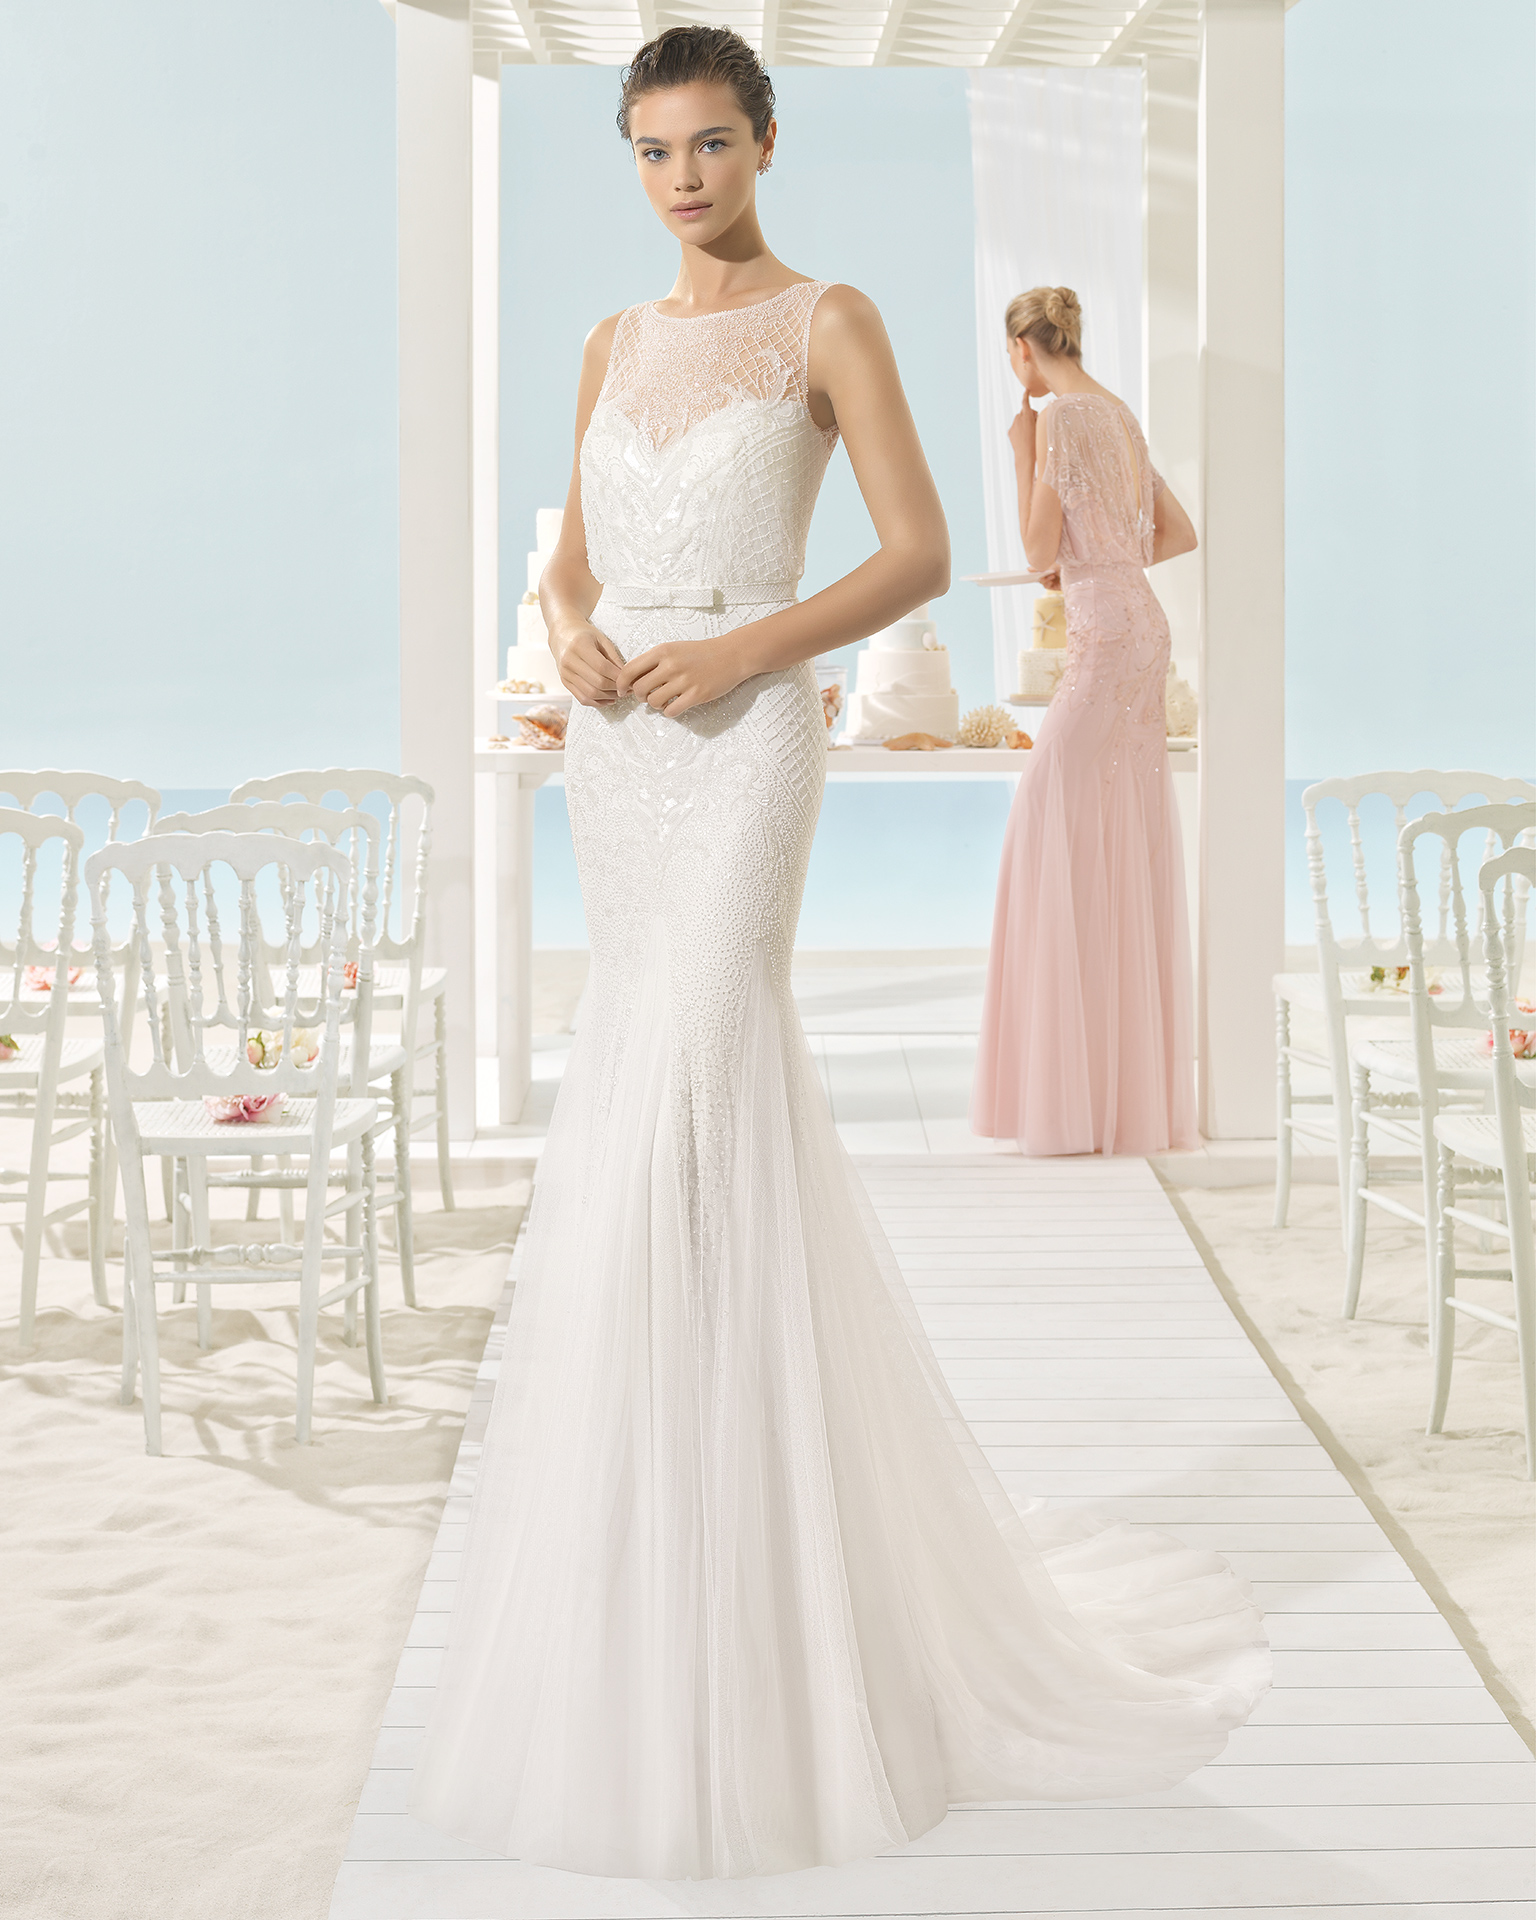 Wedding Gowns Chicago: Xana By Aire Barcelona